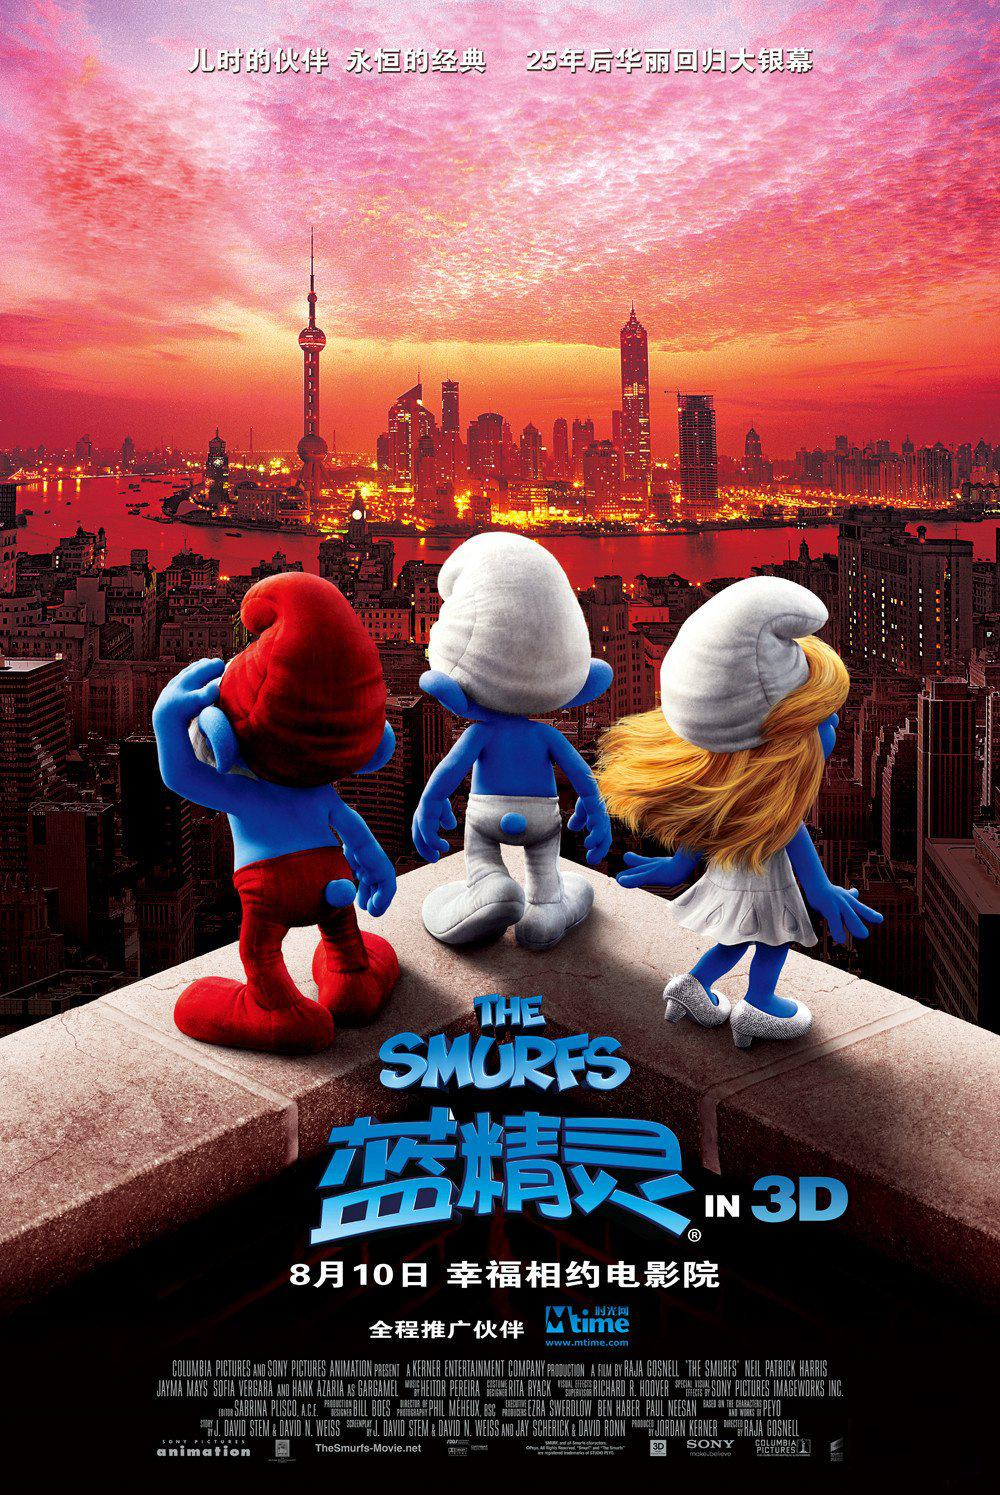 Film I Puffi in 3D - Movie Smurfs in 3D - poster - red